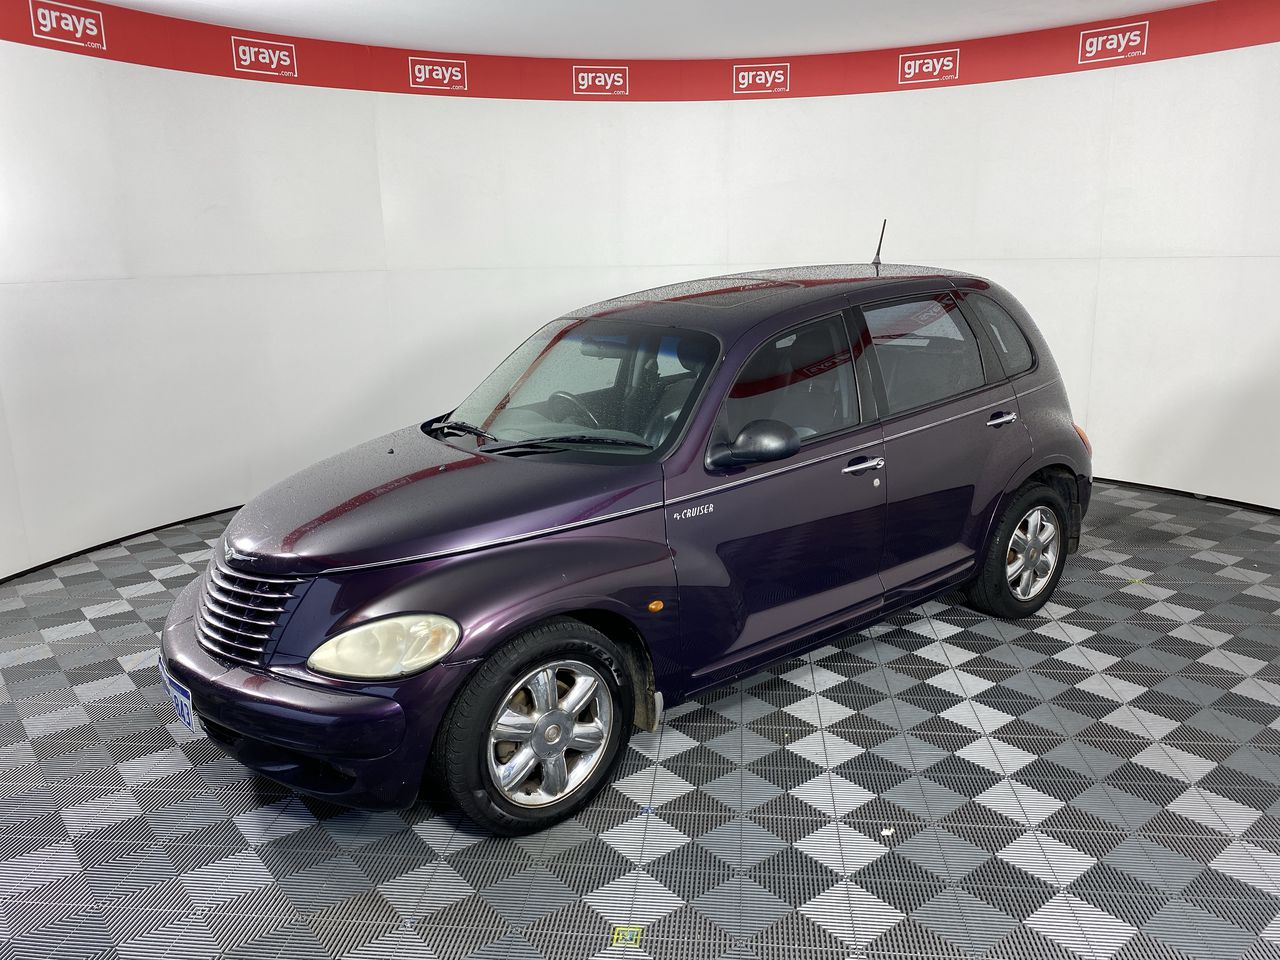 2004 Chrysler PT Cruiser Limited Manual Hatchback